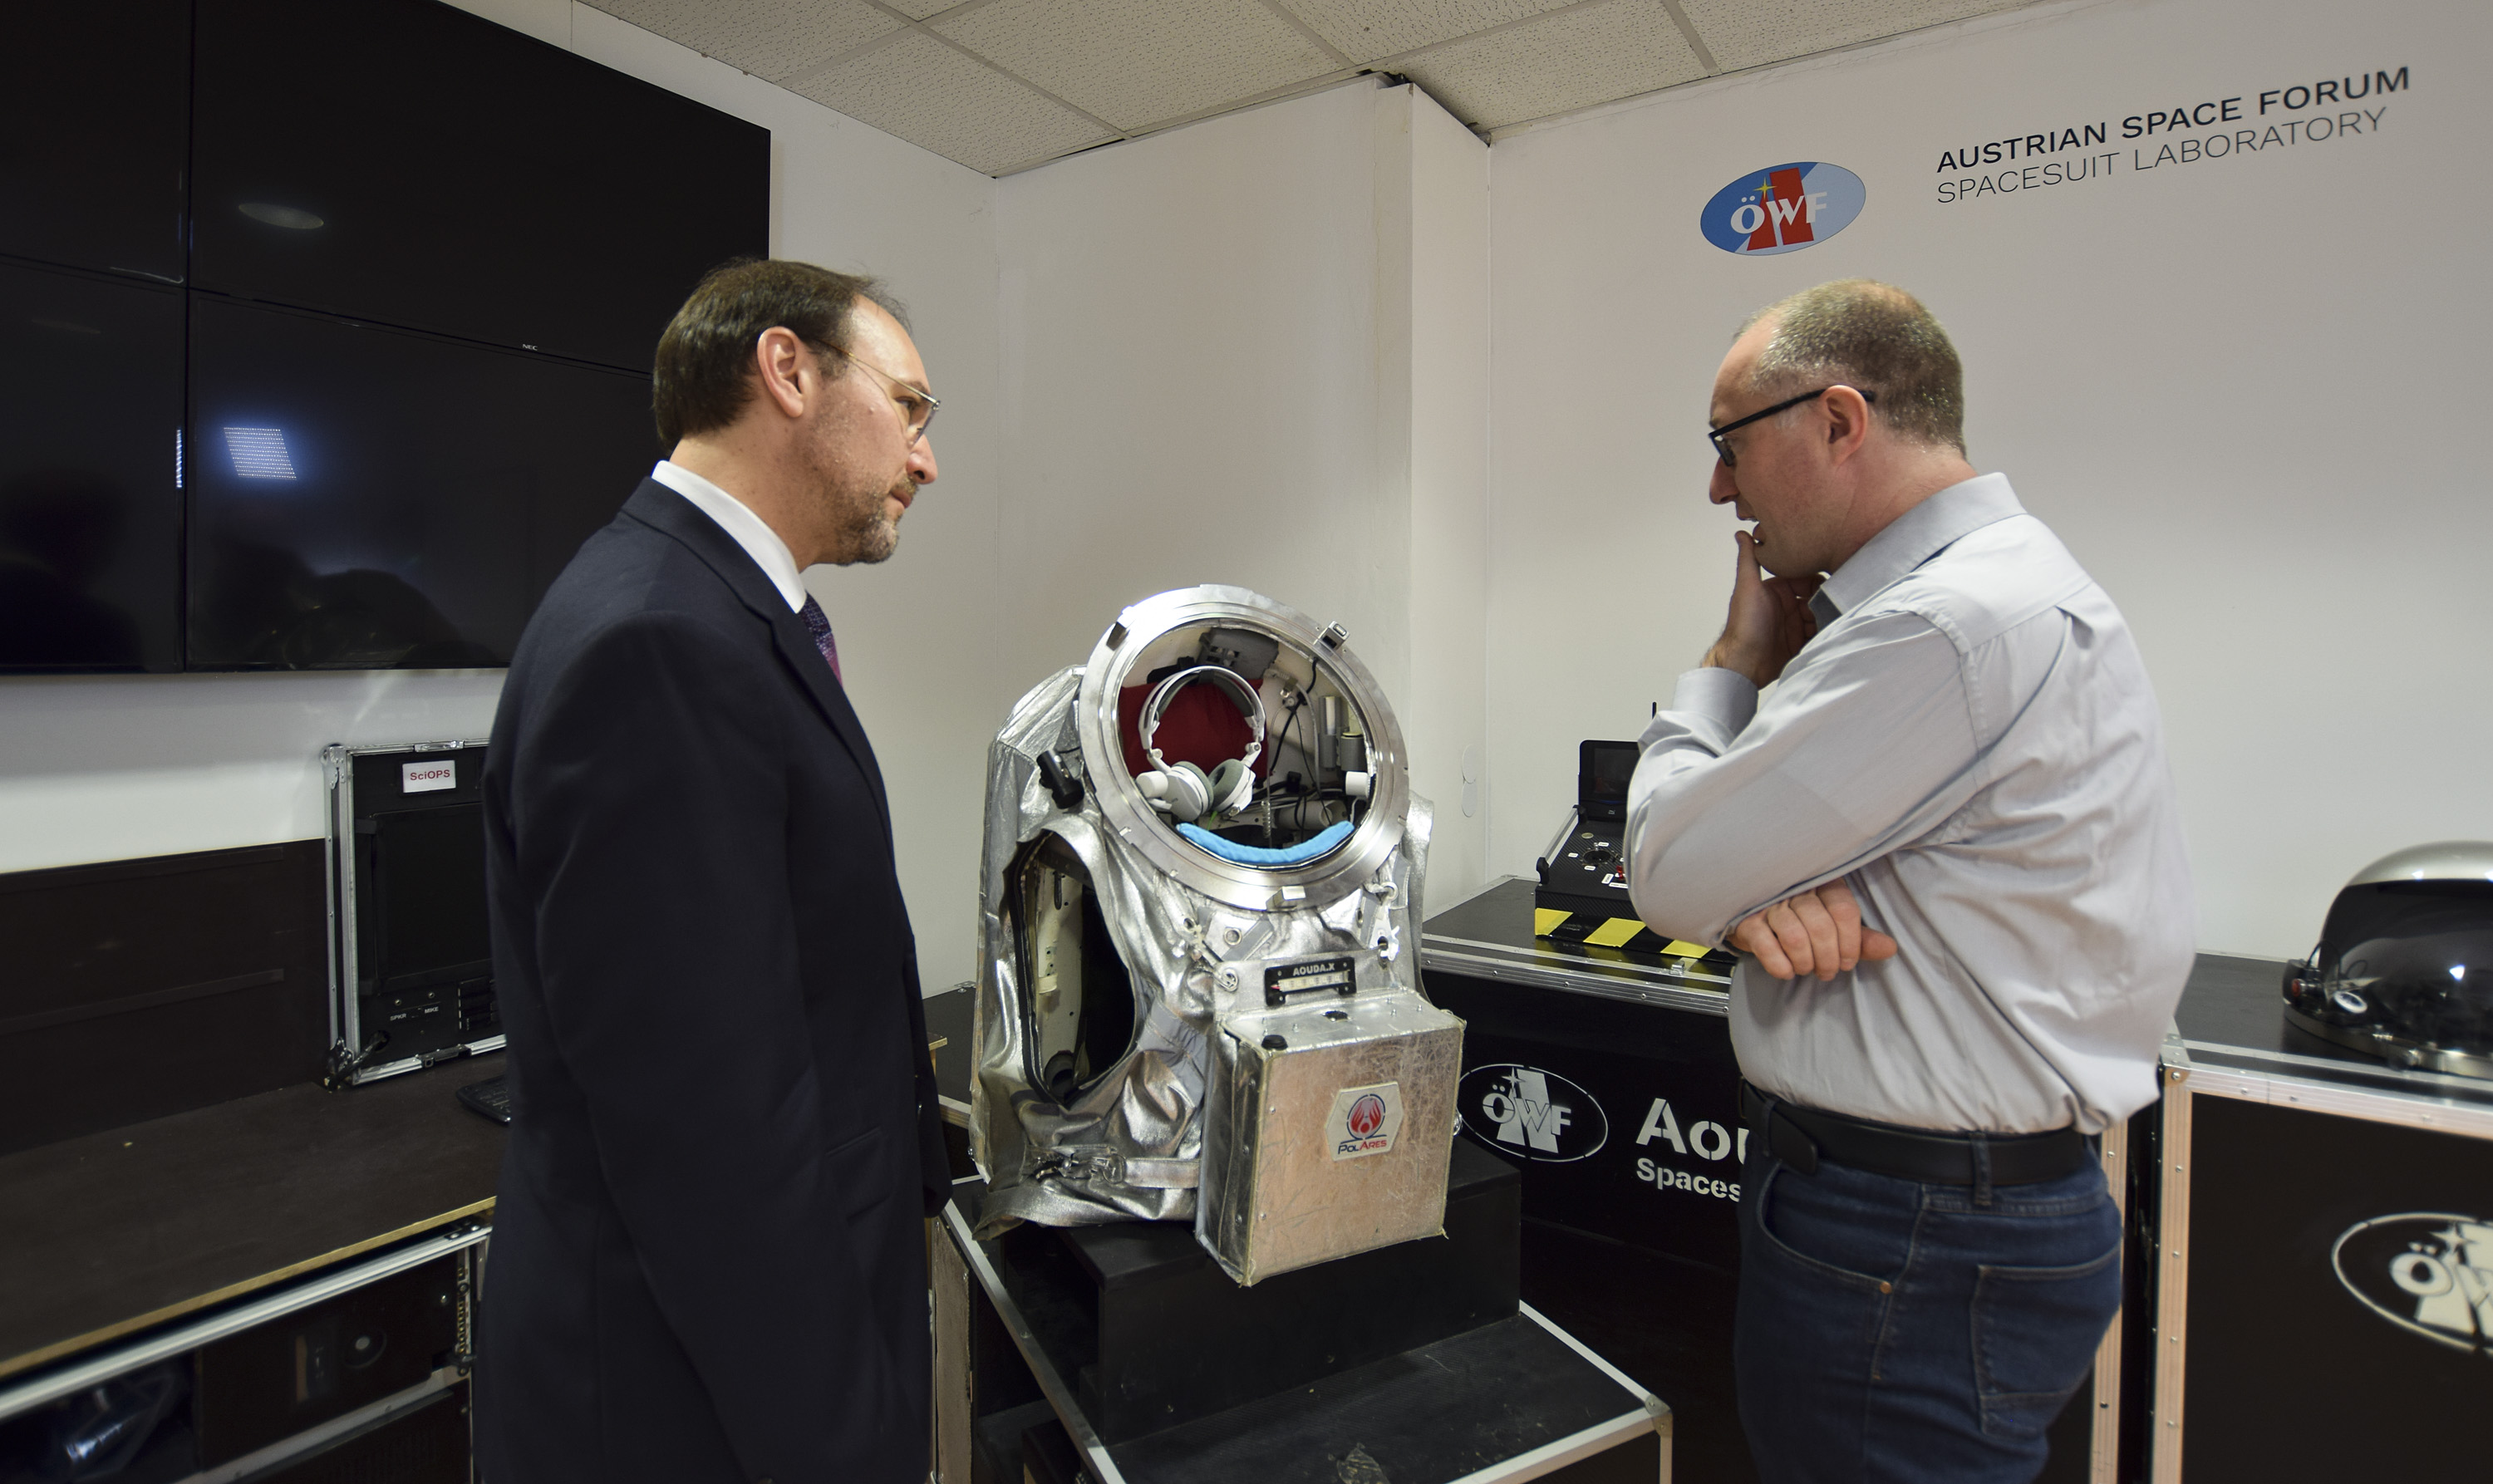 NASA Chief Technologist visits the OeWF Spacesuit Laboratory